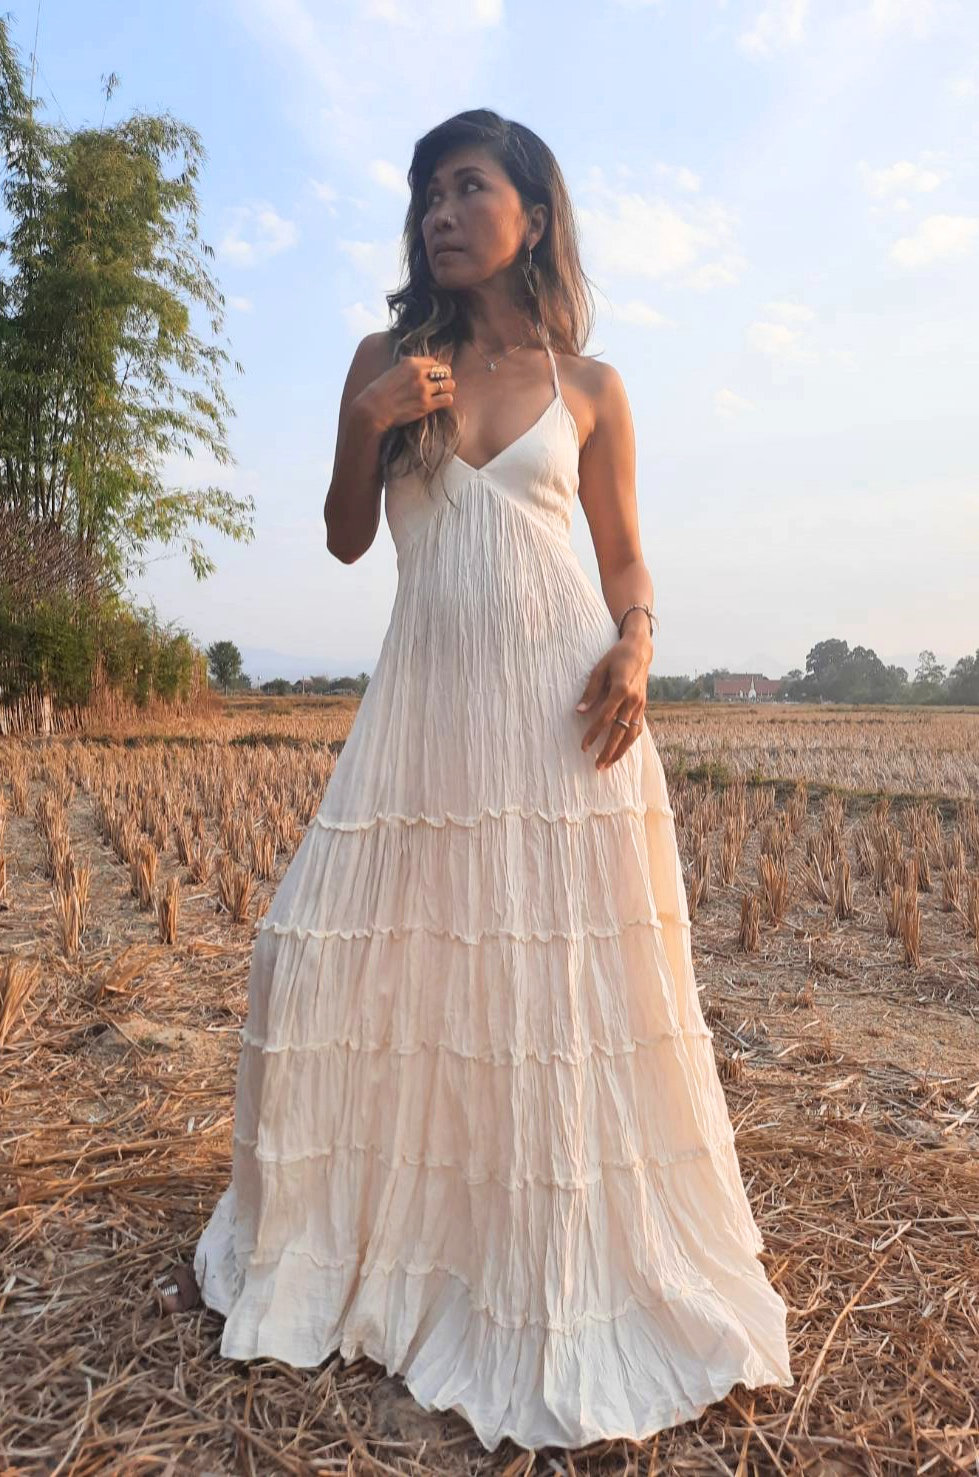 Handmade Halter Maxi Dress, Bohemian Dress, Gown Dress, Boho Backless Dress.bohemian Wedding Dress, Resort Wear, Beach Dress